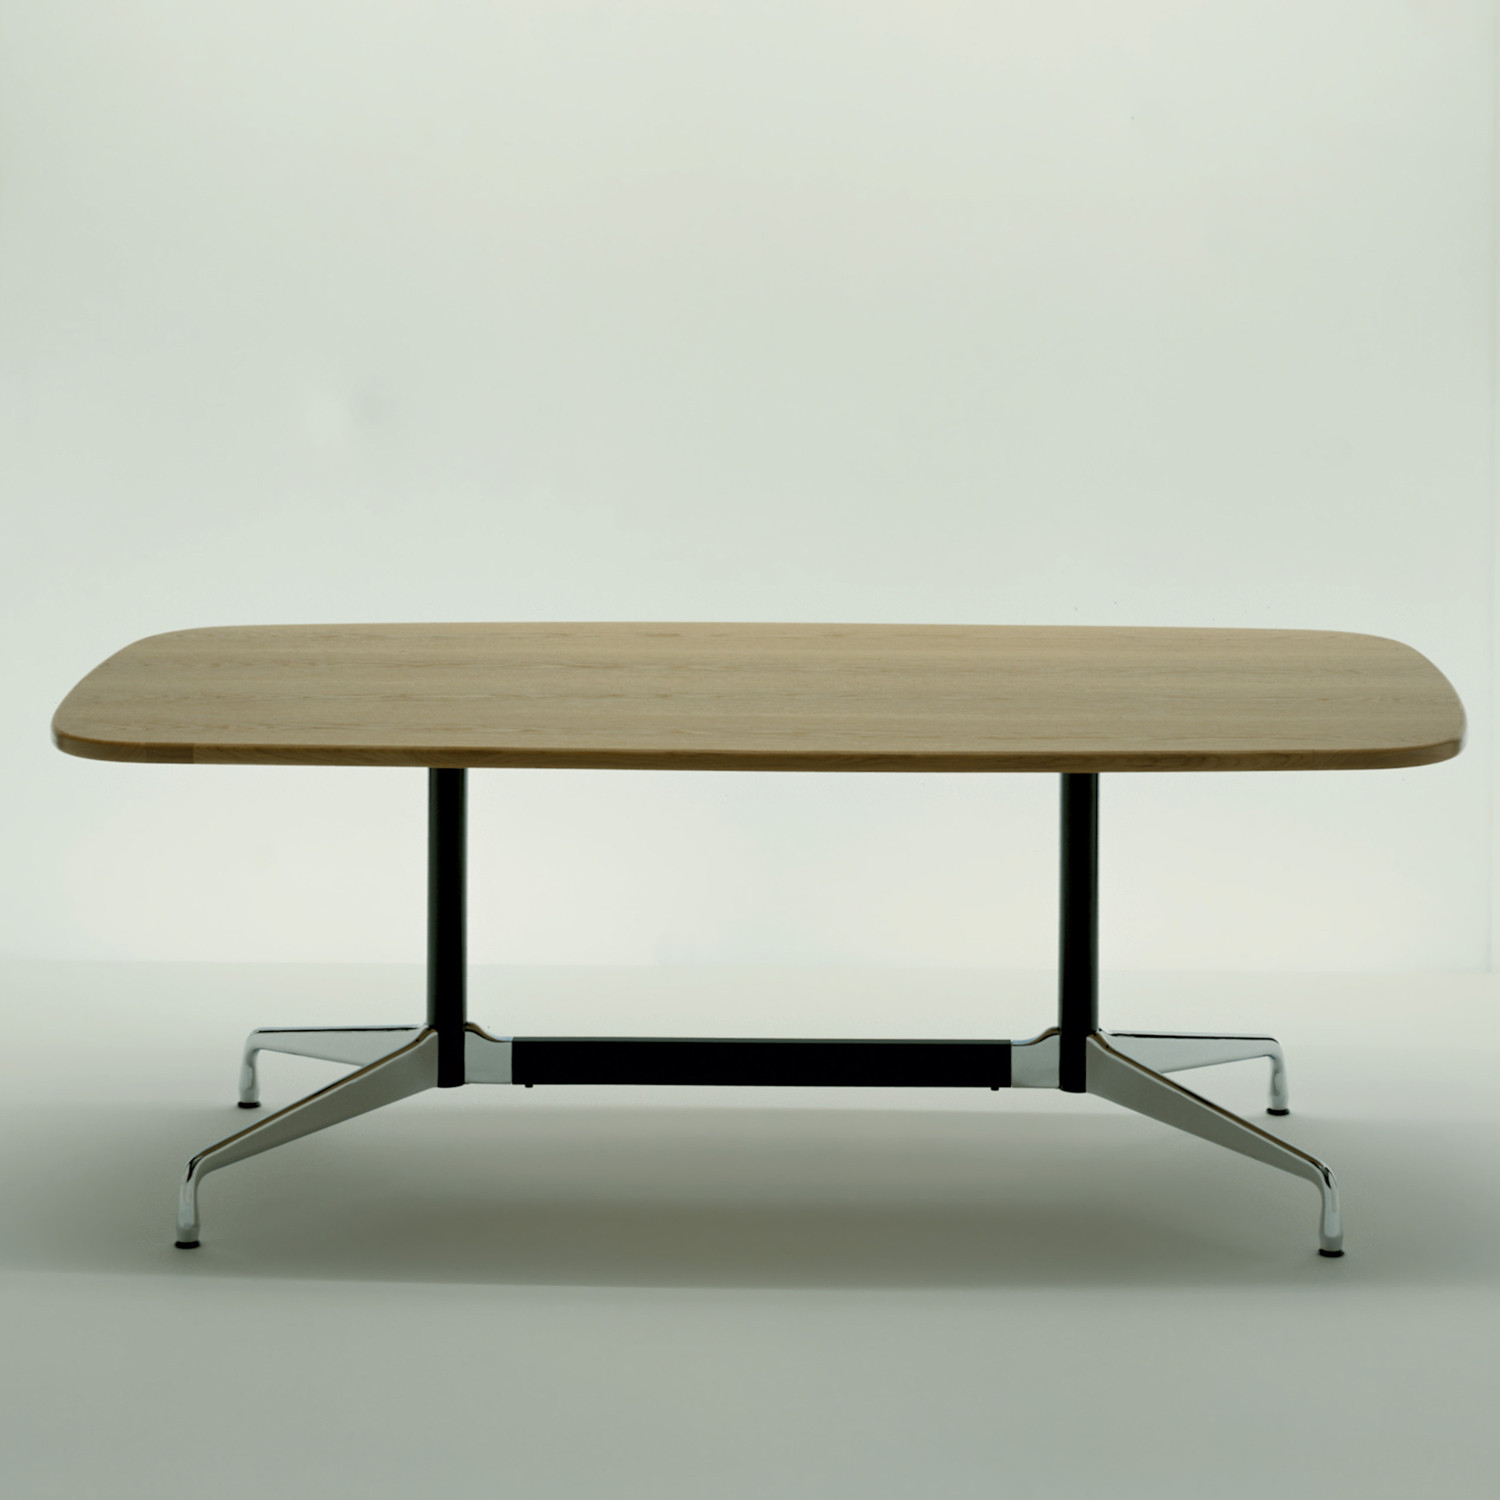 Eames Meeting Room Table by Vitra